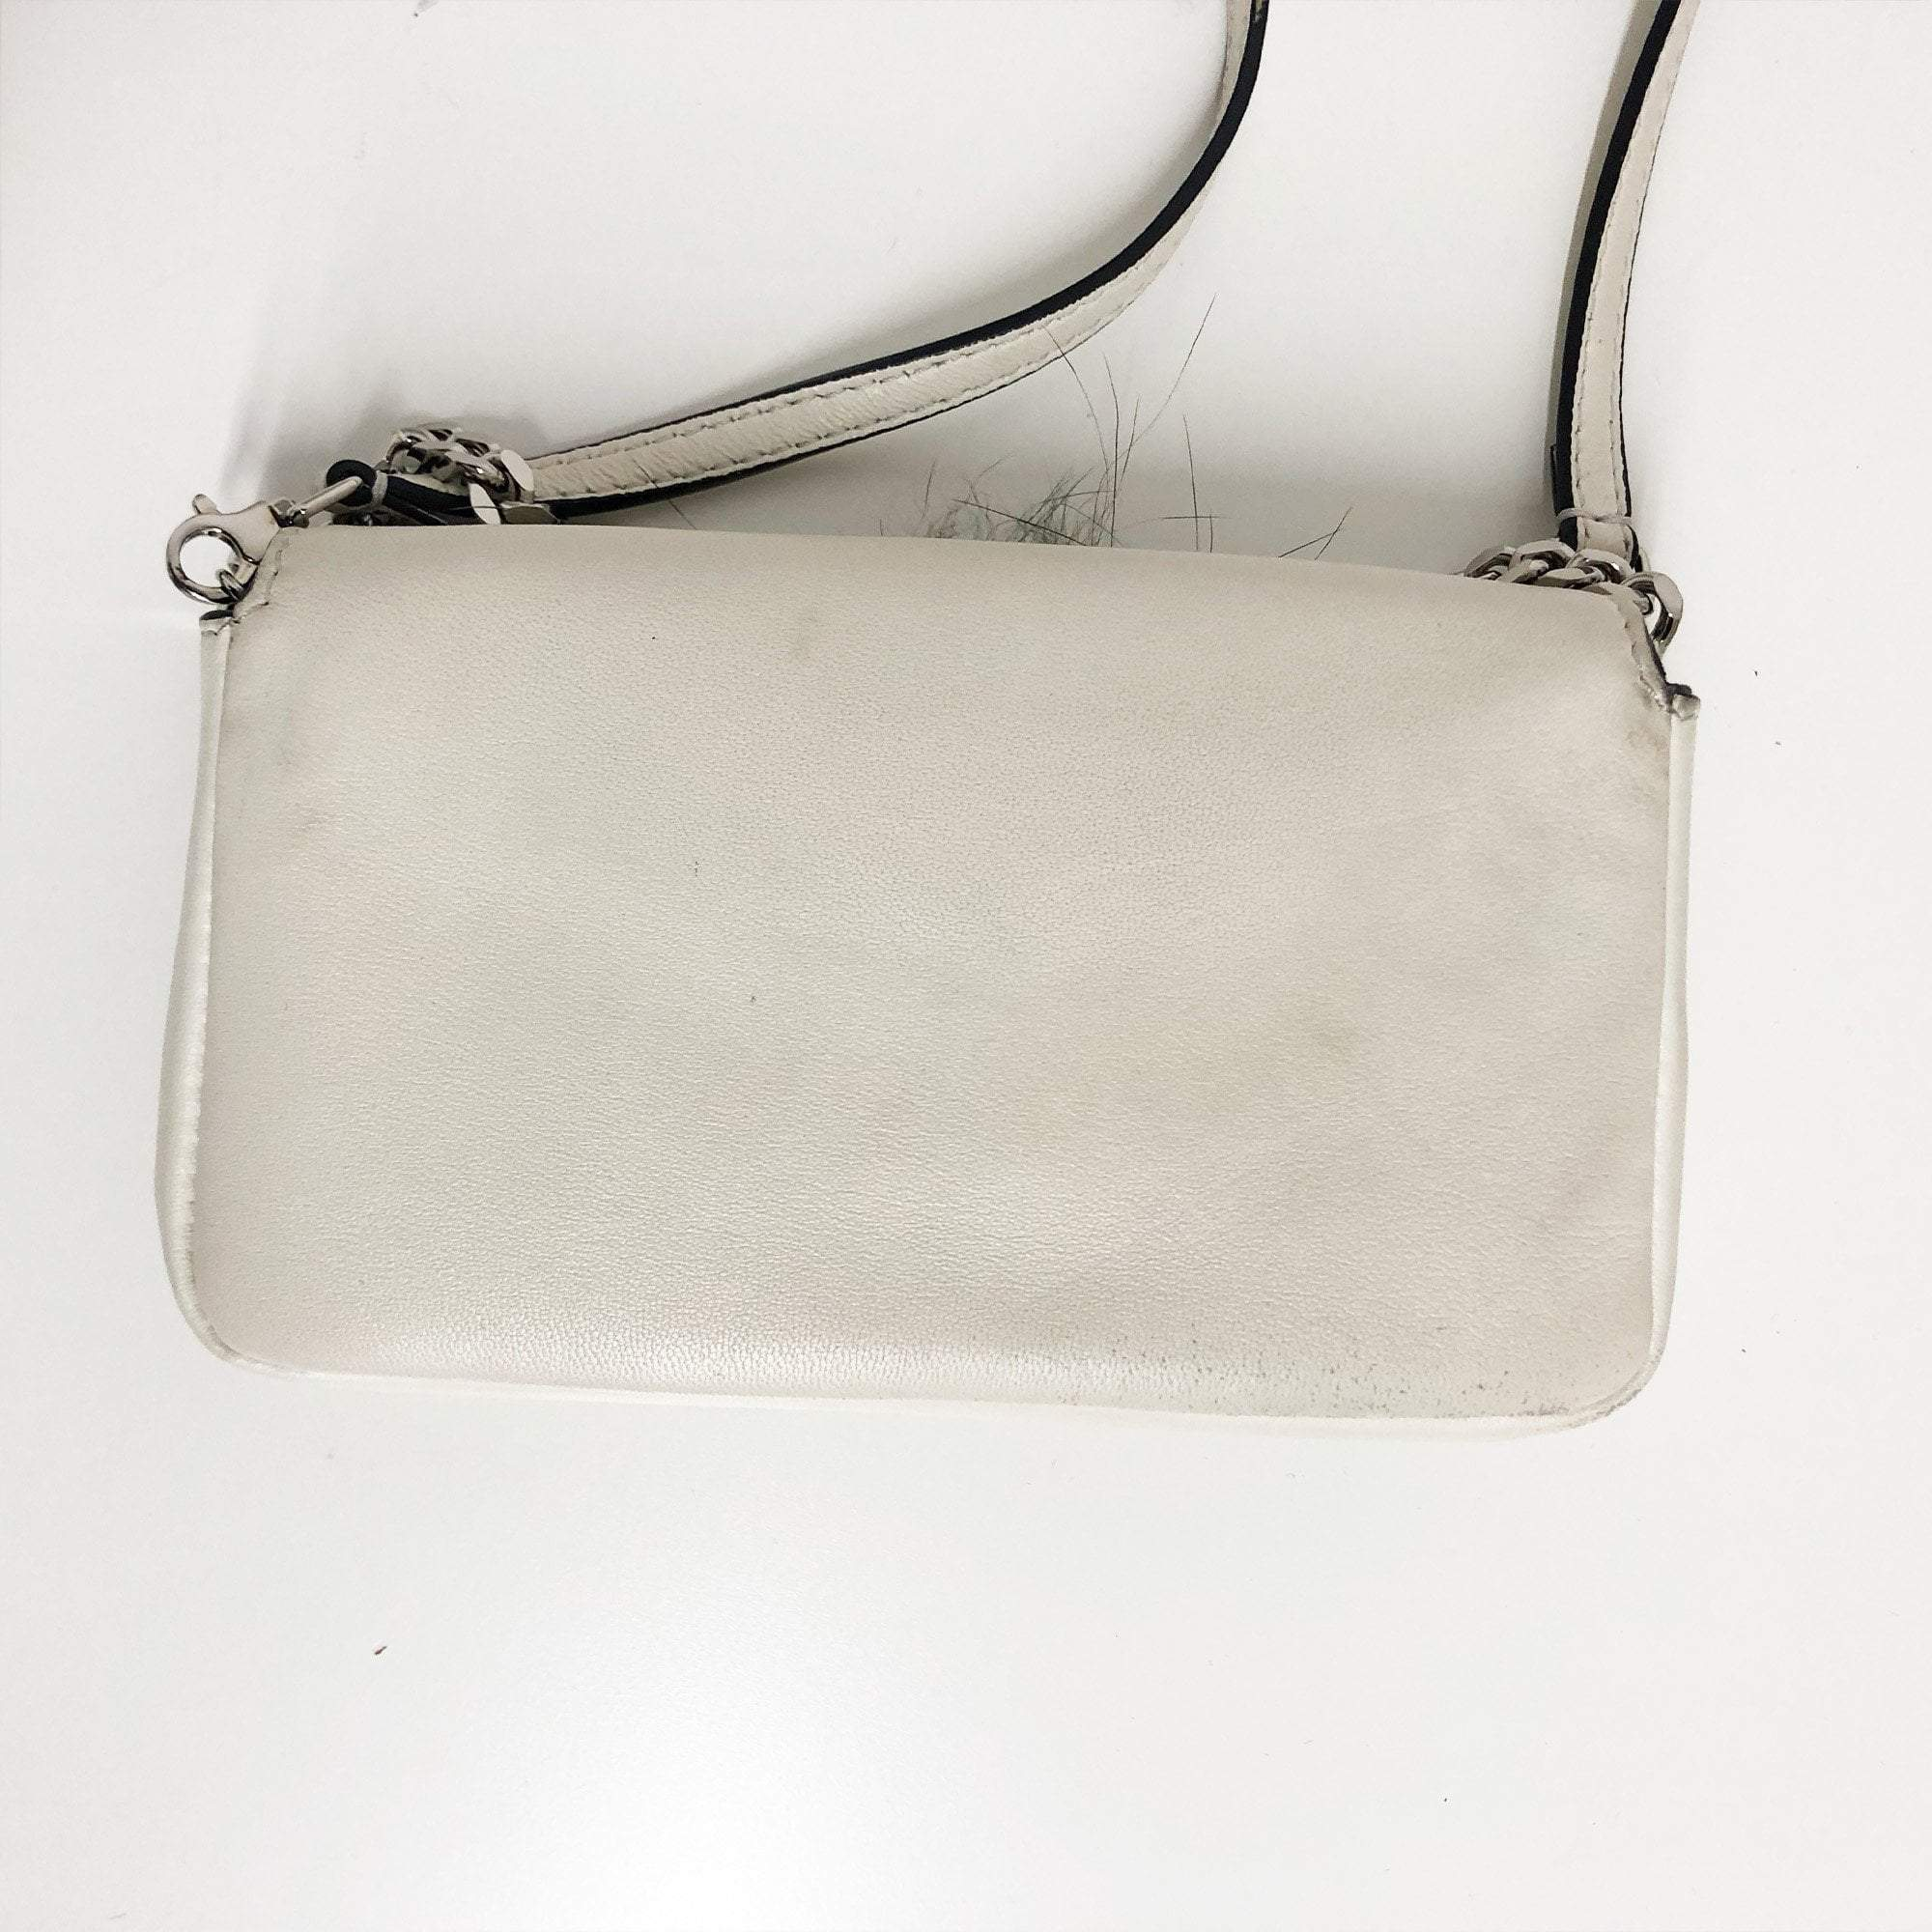 Fendi Micro Baguette White Fur-Trimmed Shoulder Bag